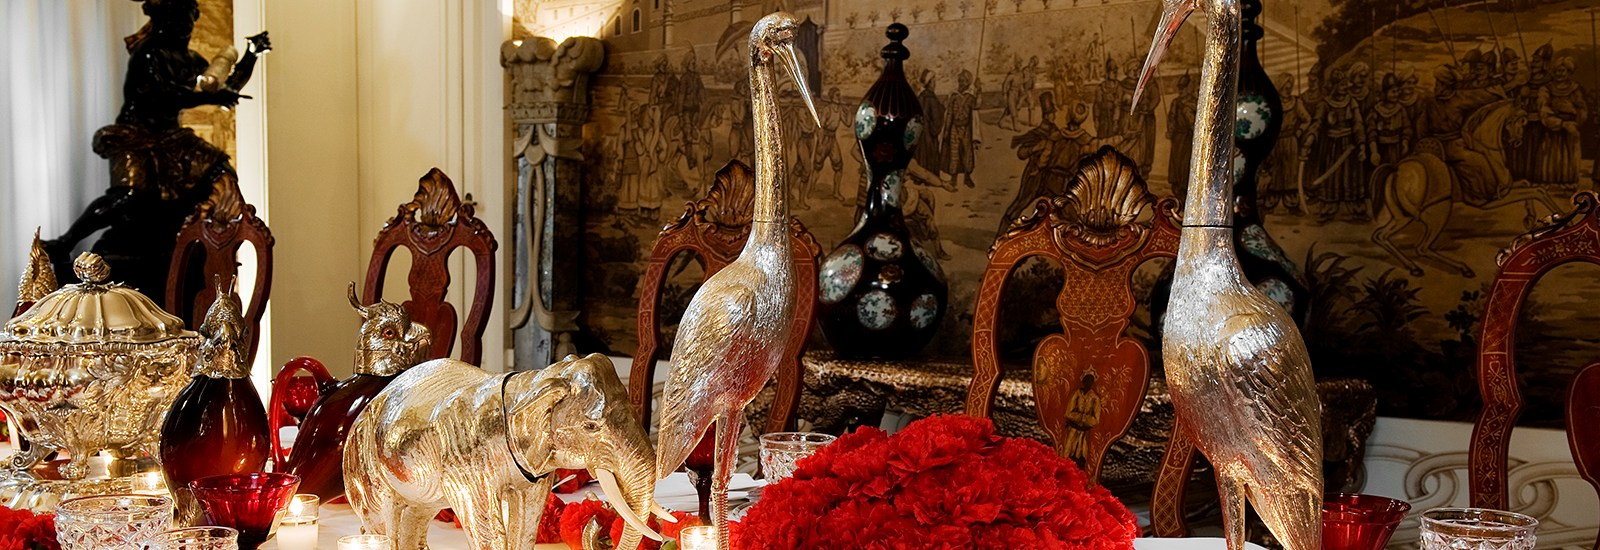 Pinto-Interior-Design-table-setting-red-festive